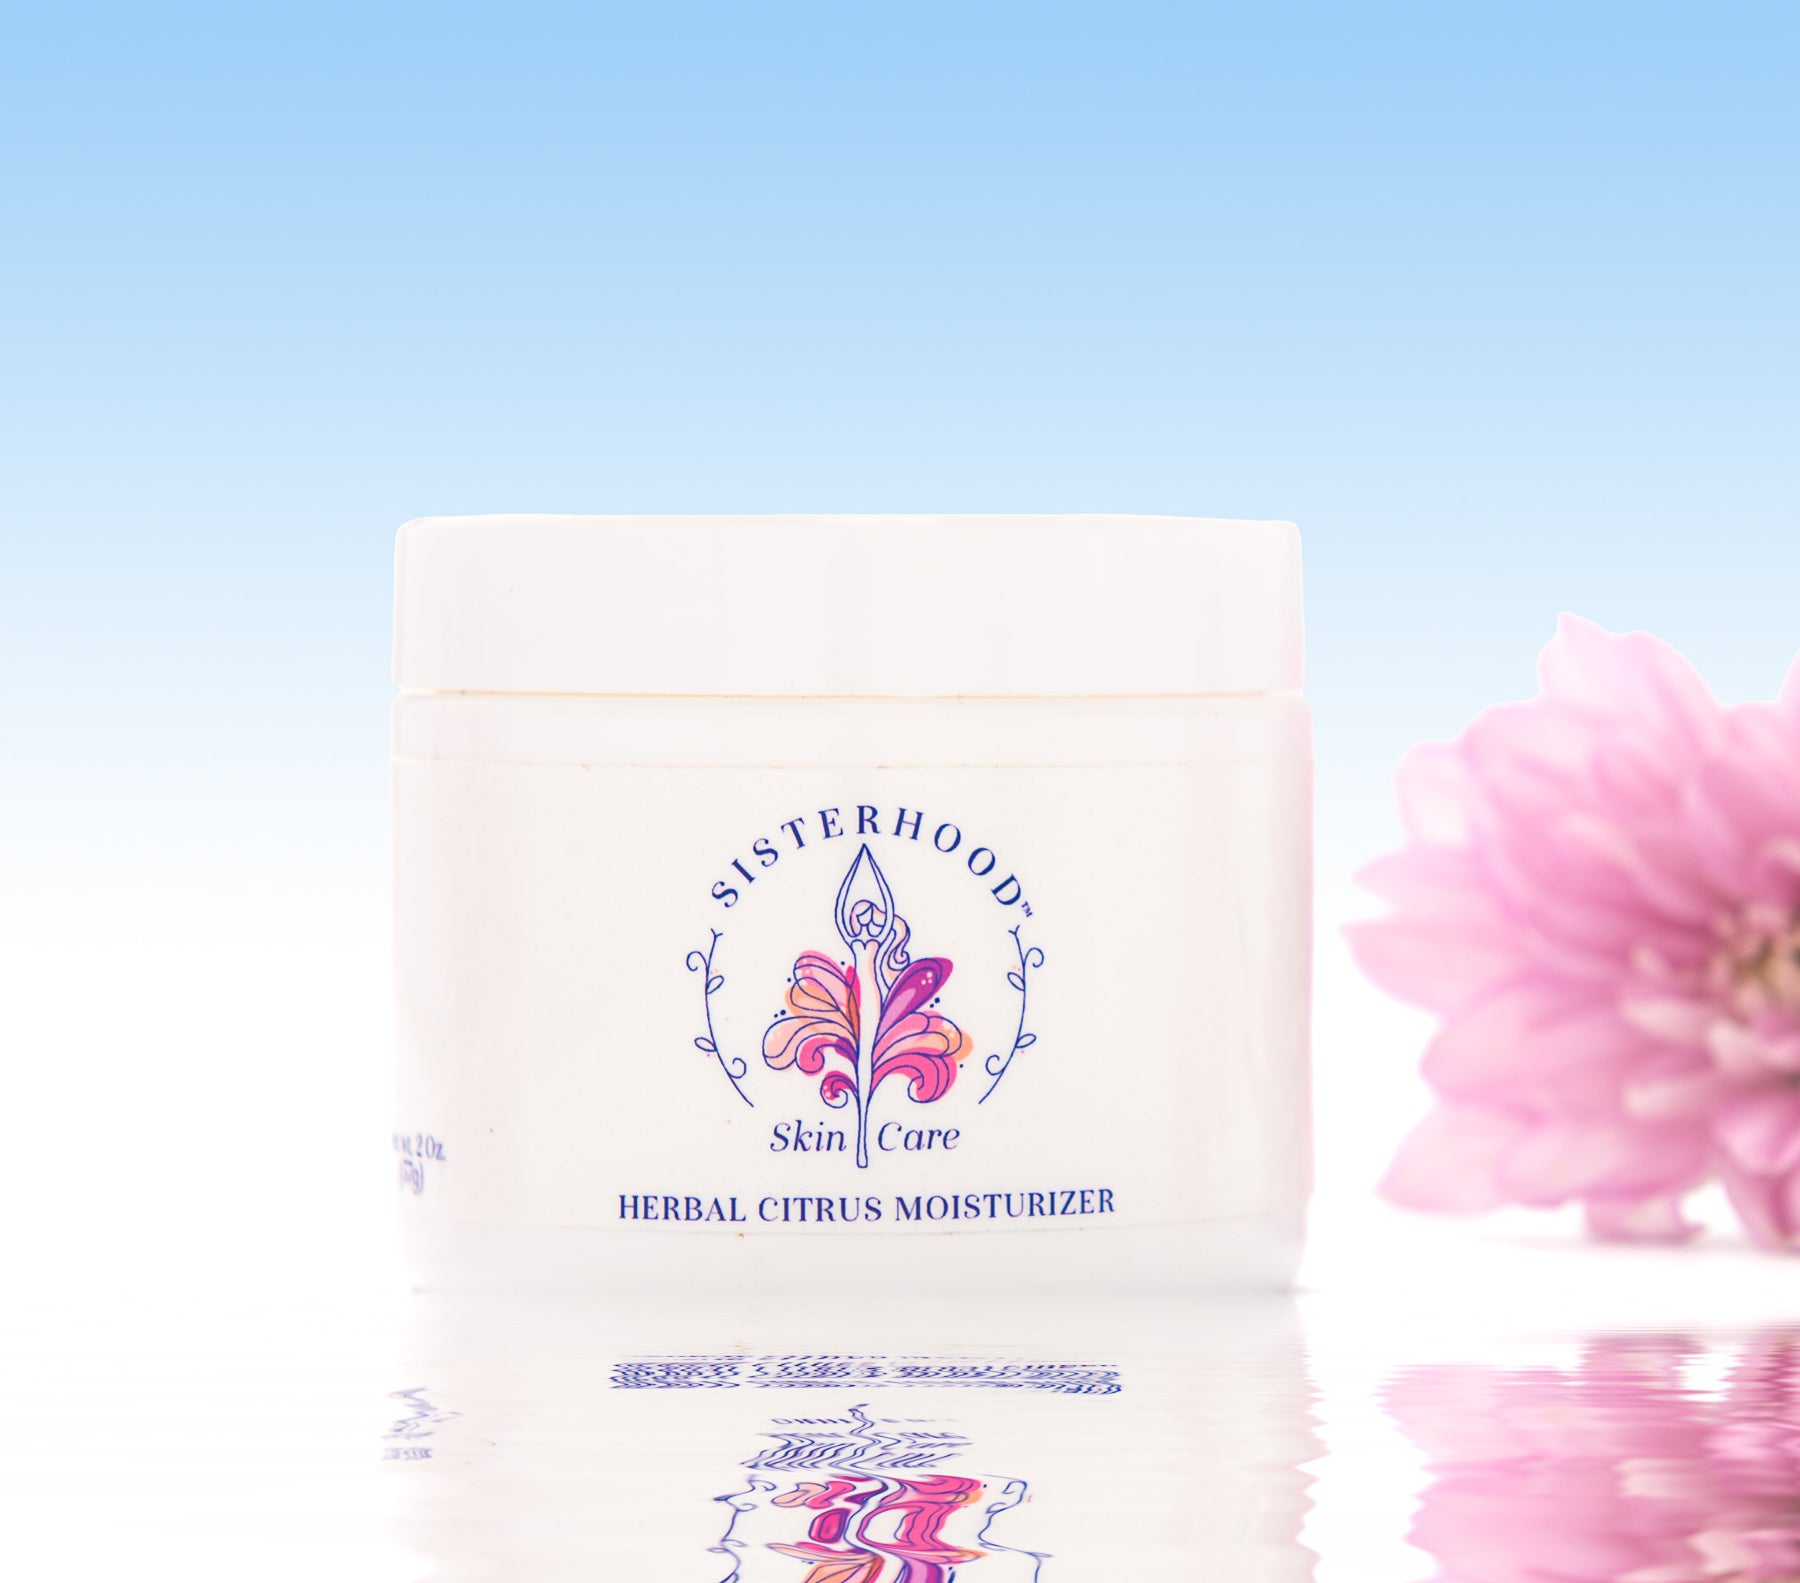 Herbal Citrus Moisturizer